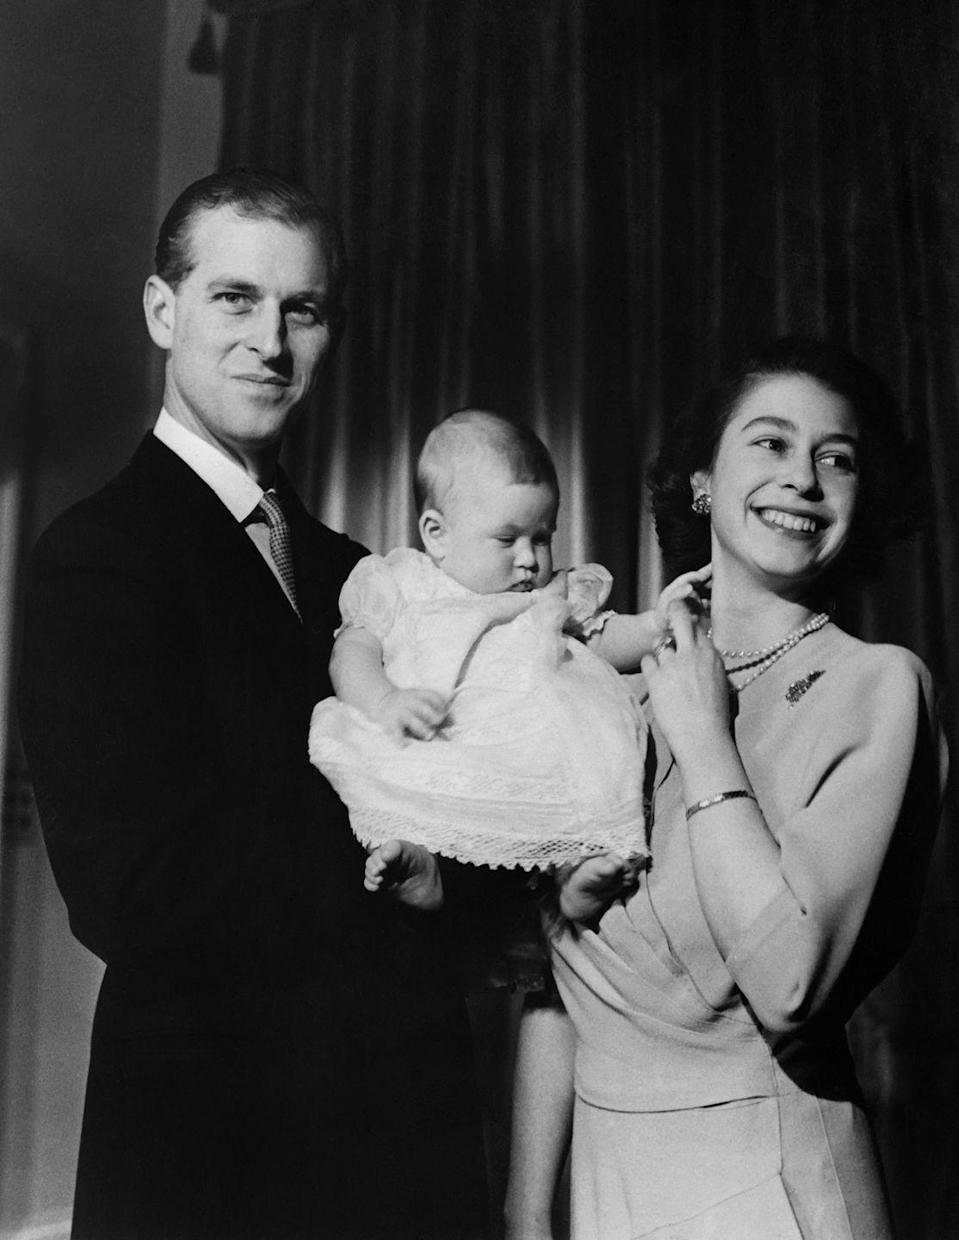 """<p>The future Queen Elizabeth II of England and Prince Philip, Duke of Edinburgh, posing with their son, <a href=""""https://www.goodhousekeeping.com/uk/fashion-beauty/a29827147/prince-charles-fashion-collection-net-a-porter/"""" rel=""""nofollow noopener"""" target=""""_blank"""" data-ylk=""""slk:Prince Charles"""" class=""""link rapid-noclick-resp"""">Prince Charles</a>.</p>"""